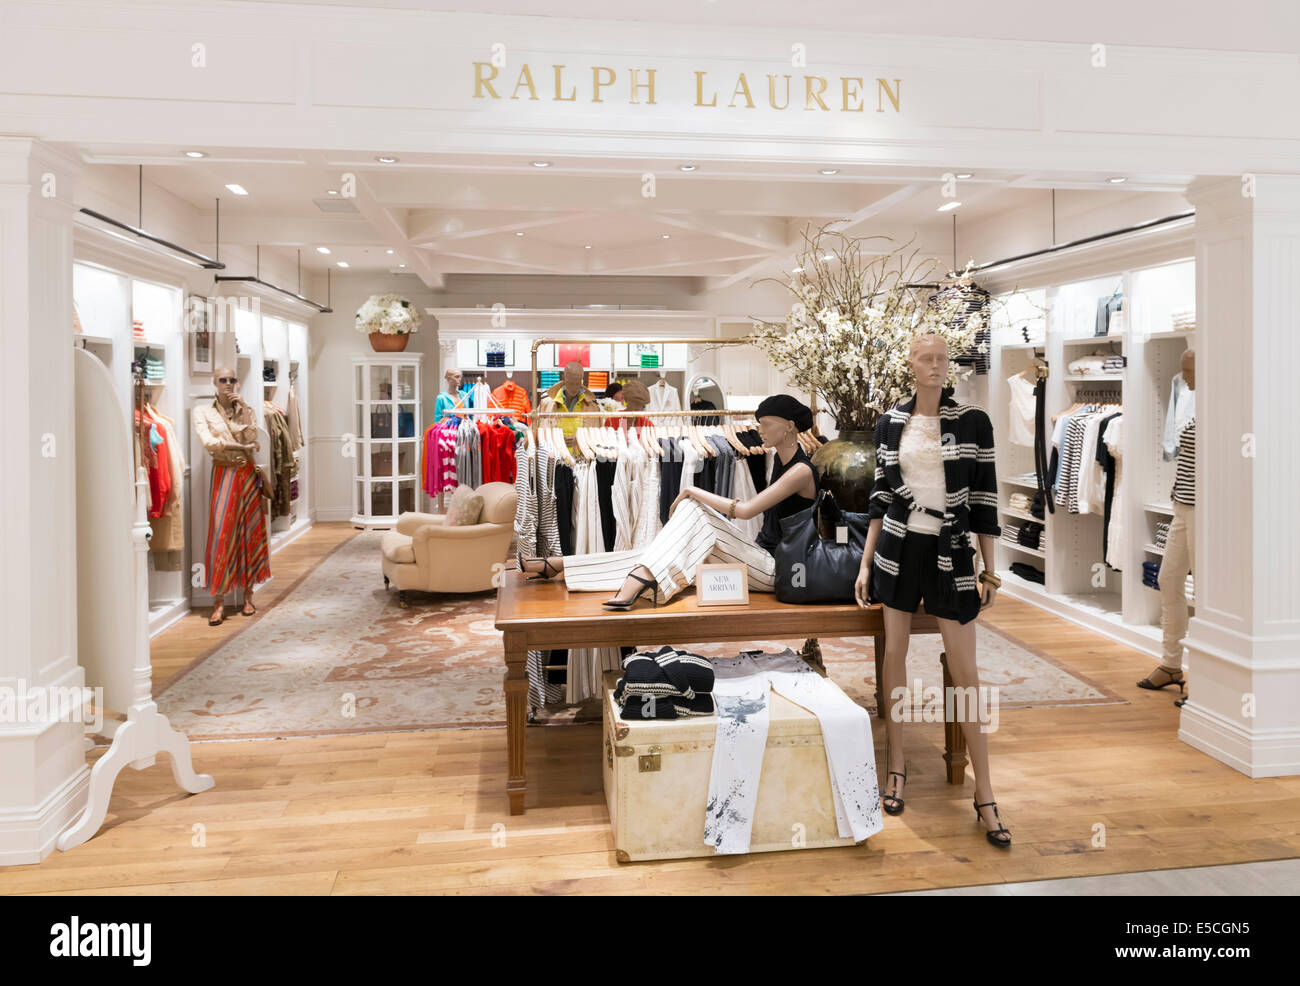 Ralph Lauren womens fashion clothing store in Tokyo Japan - Stock Image